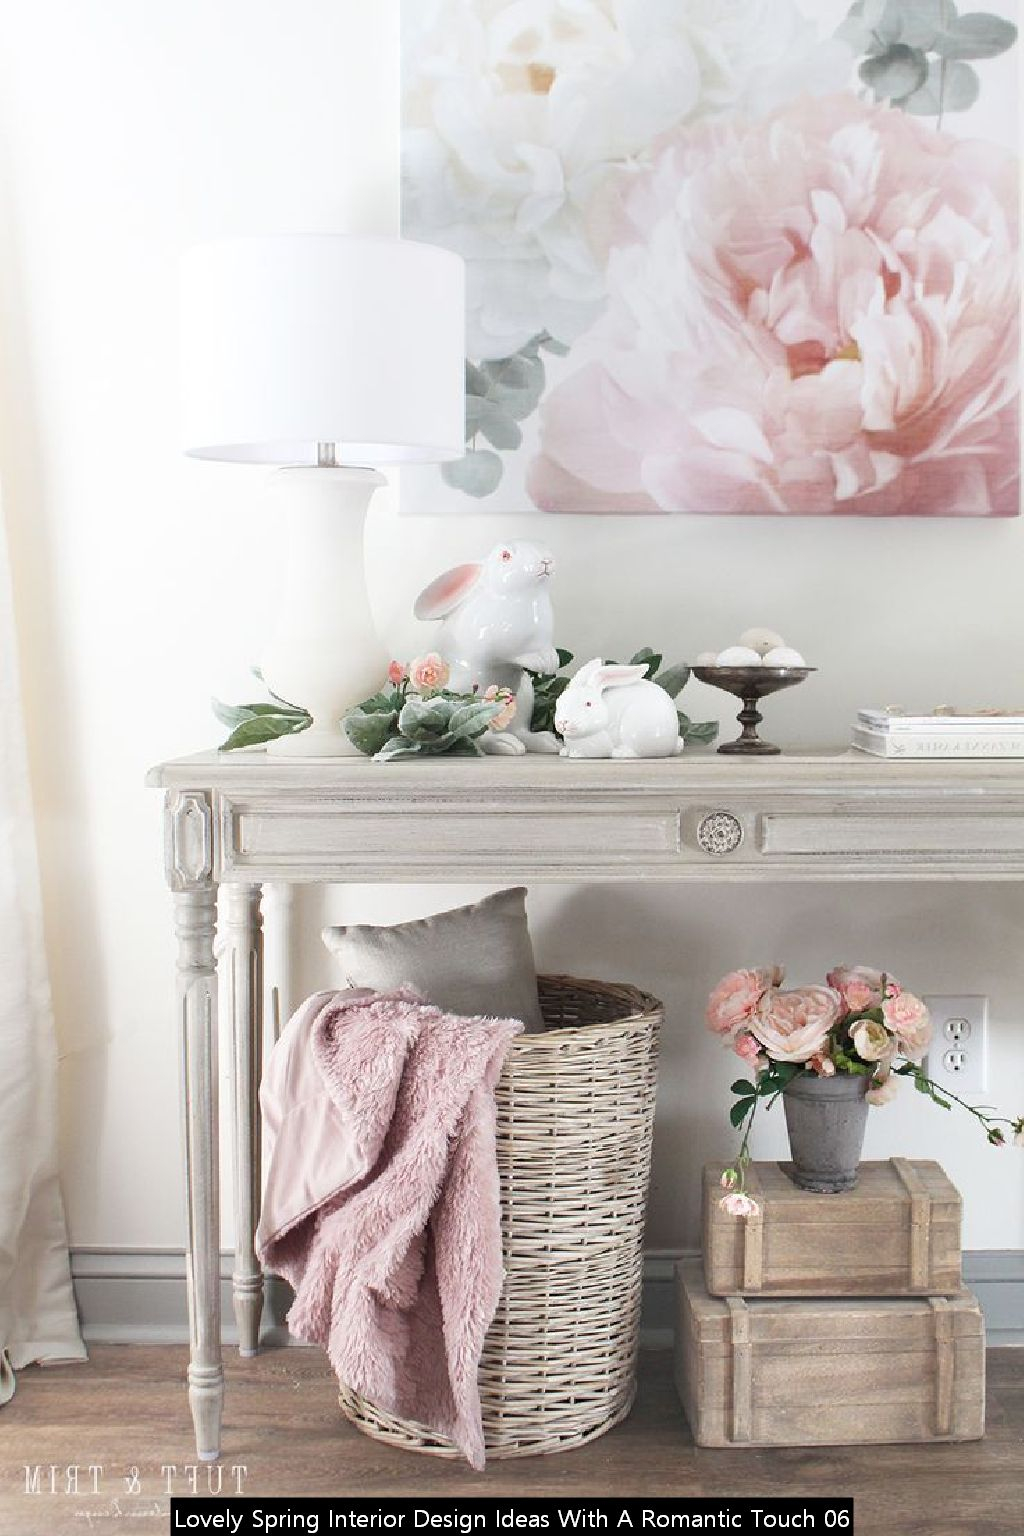 Lovely Spring Interior Design Ideas With A Romantic Touch 06